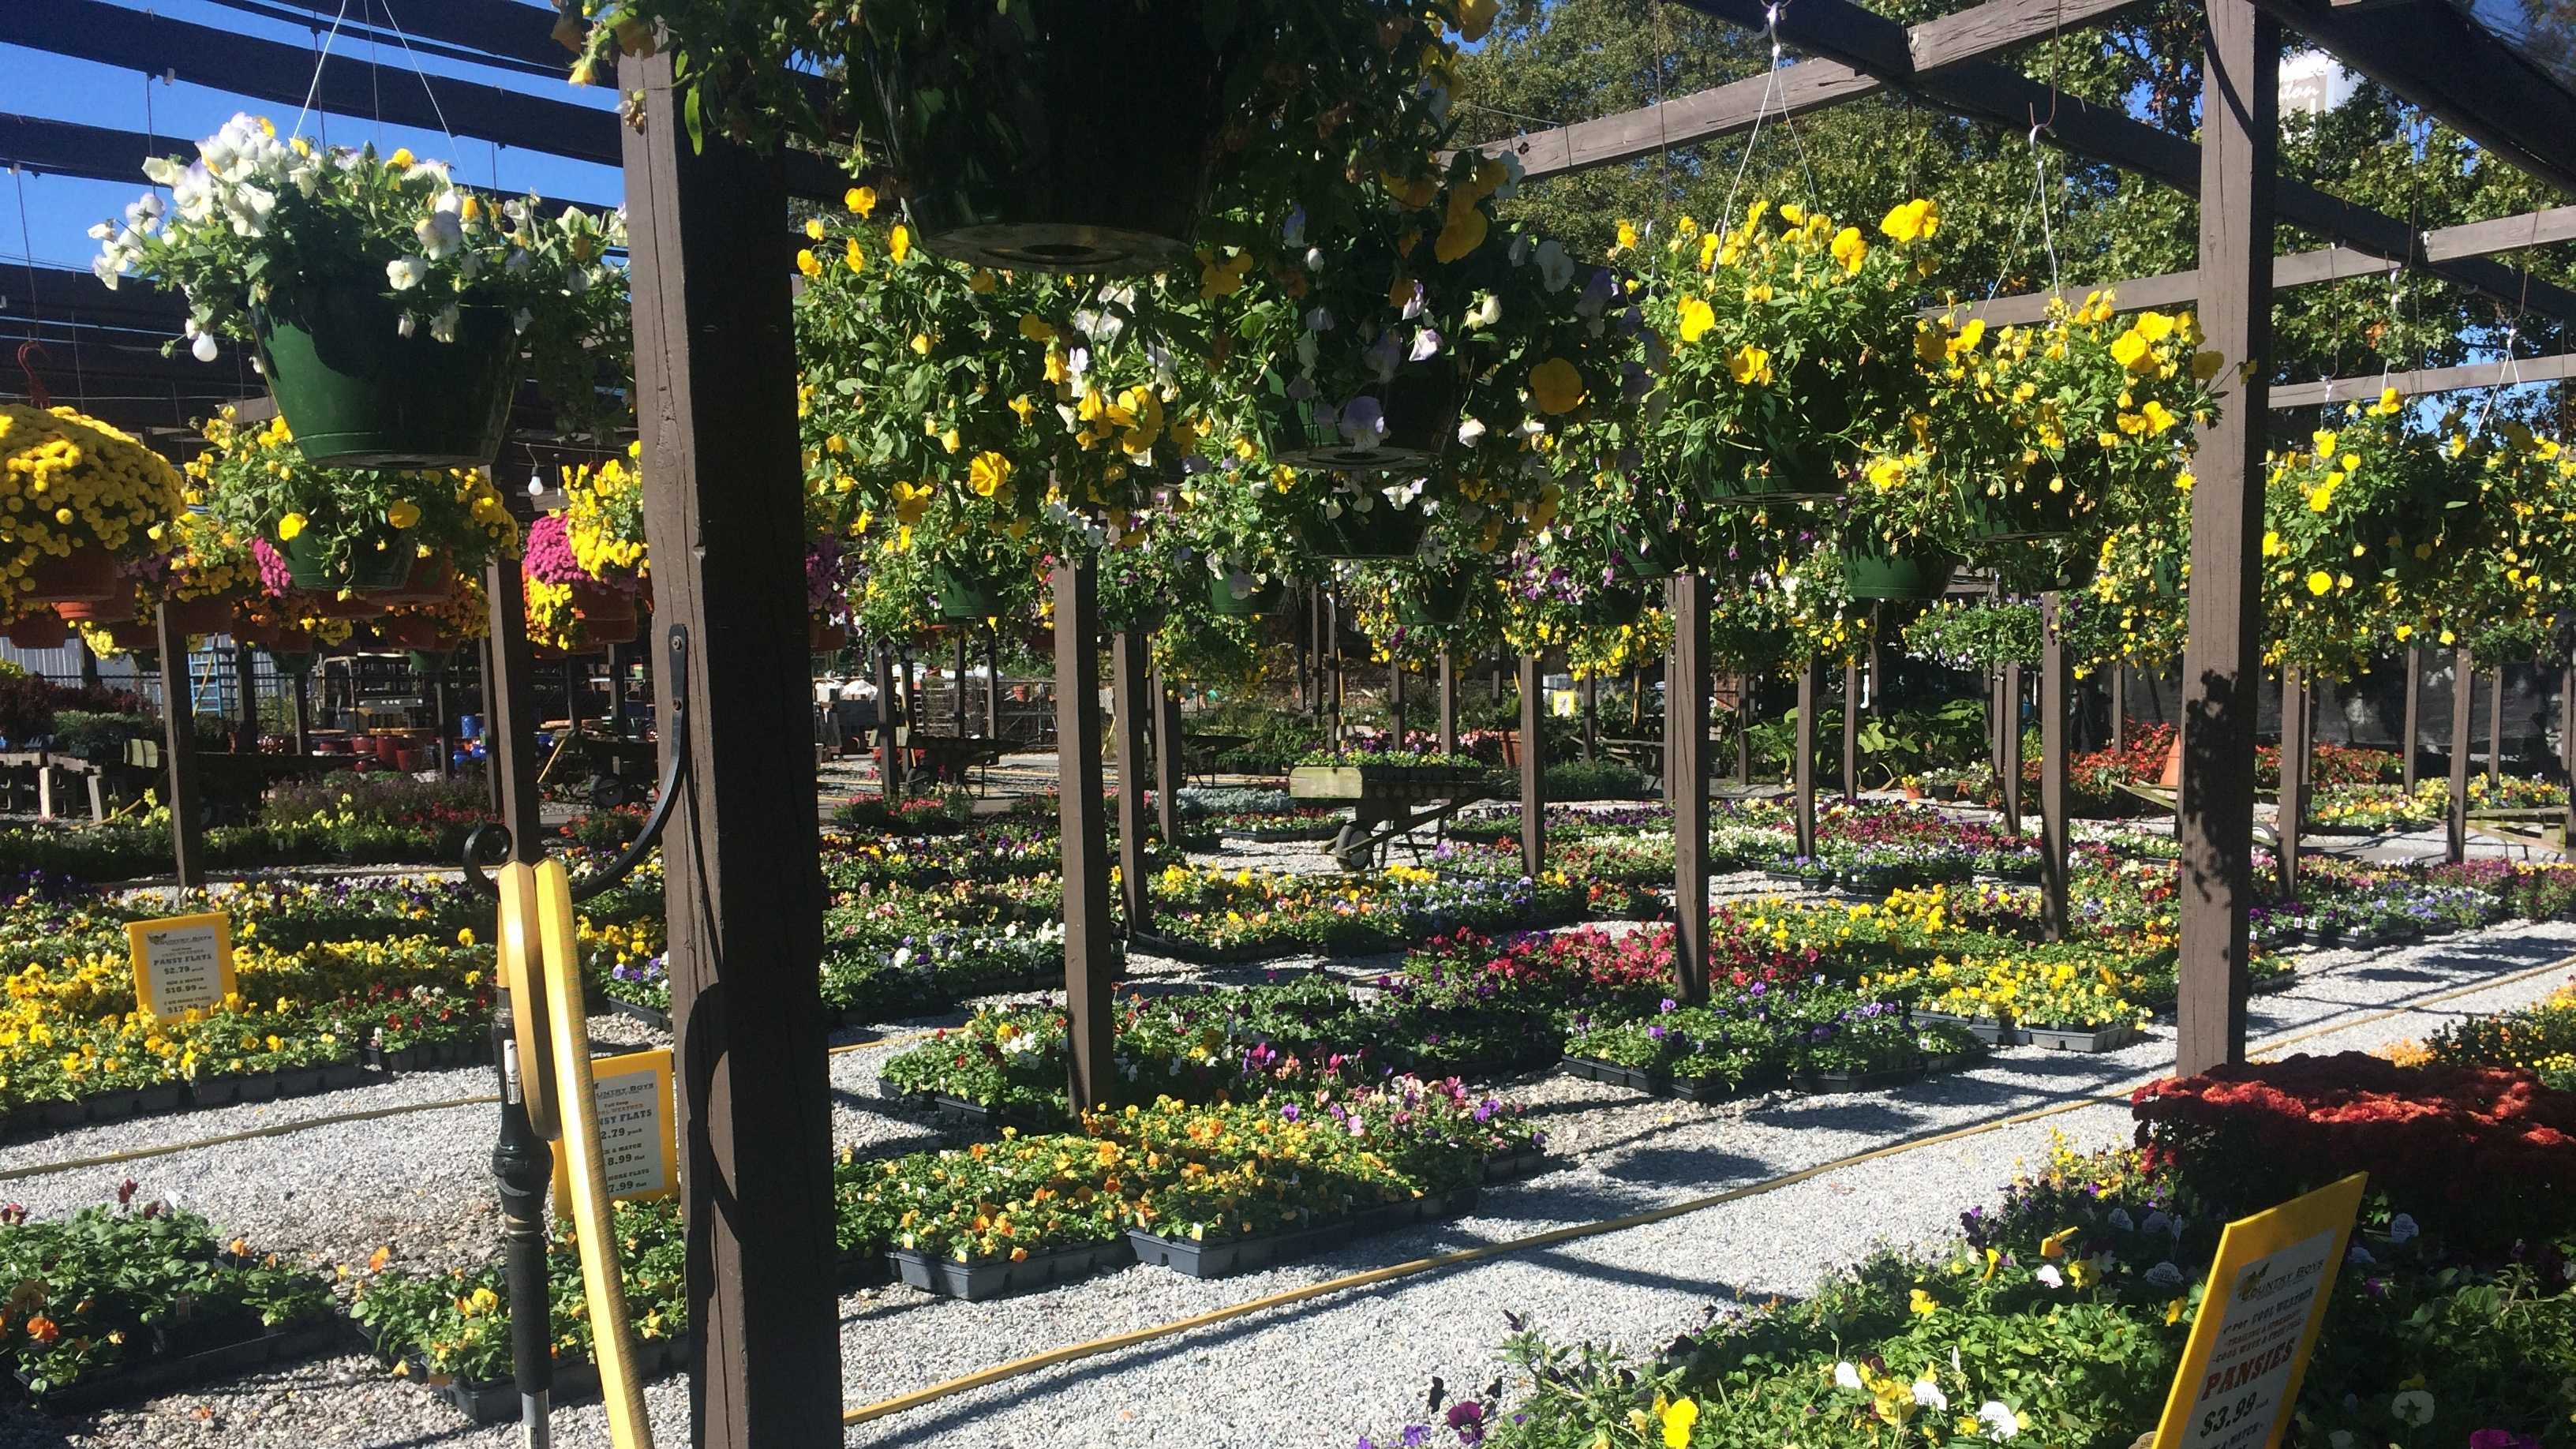 At Country Boys in Greenville, the nursery is stocked with plants for fall and weather temperatures.